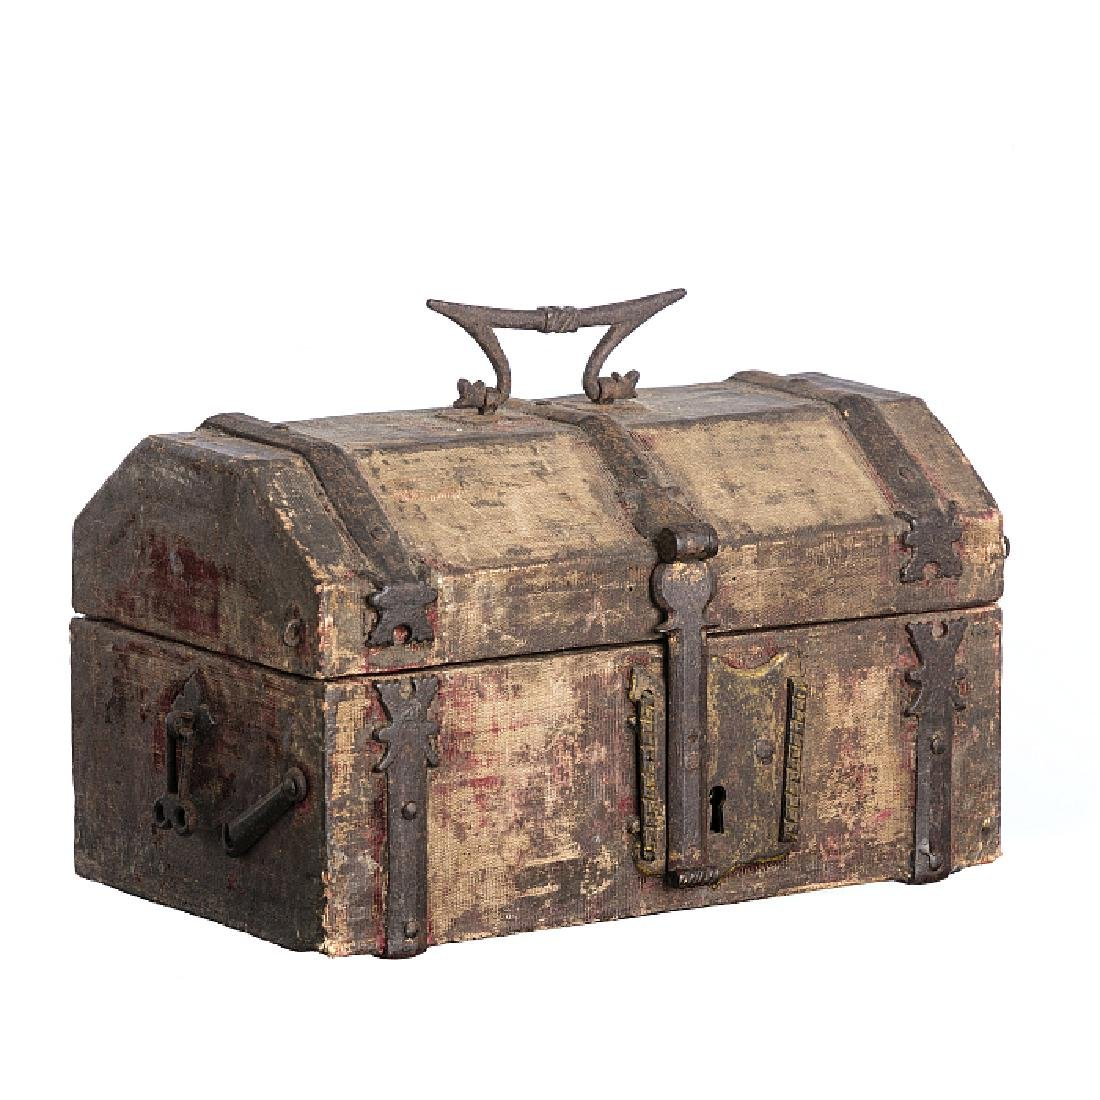 Small Late Gothic chest/safe